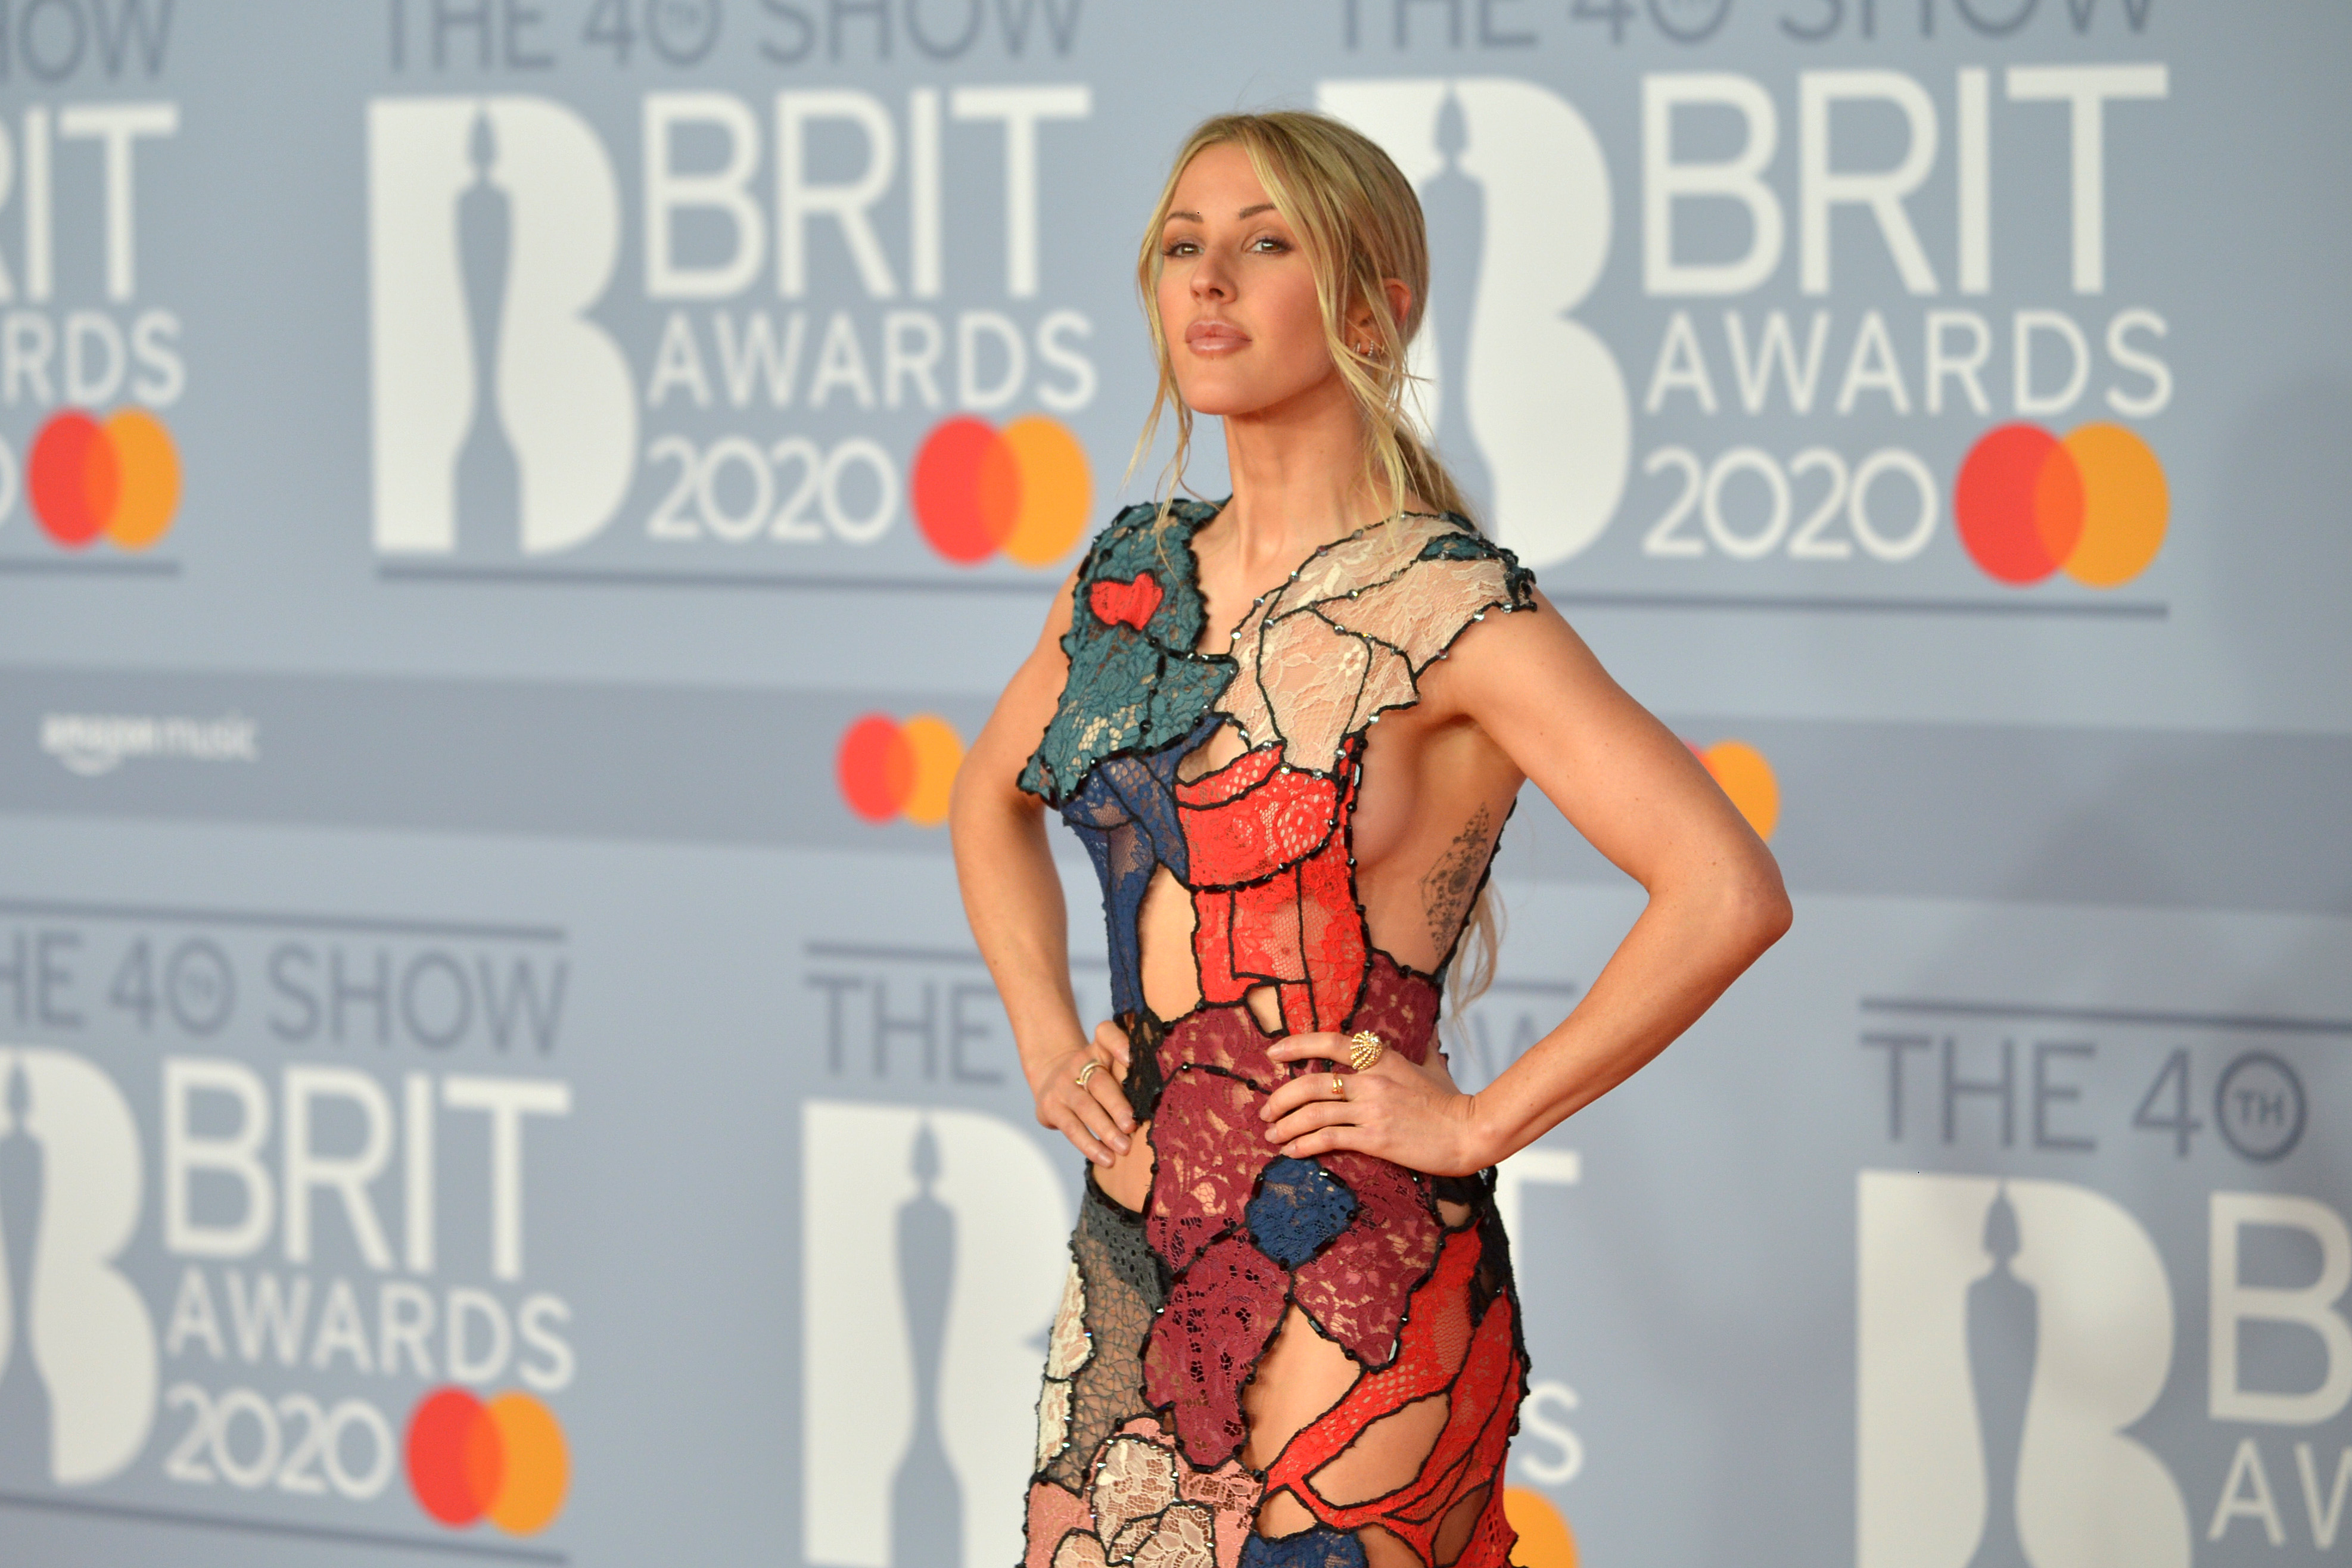 LONDON, ENGLAND - FEBRUARY 18: (EDITORIAL USE ONLY) Ellie Goulding attends The BRIT Awards 2020 at The O2 Arena on February 18, 2020 in London, England. (Photo by Jim Dyson/Redferns)